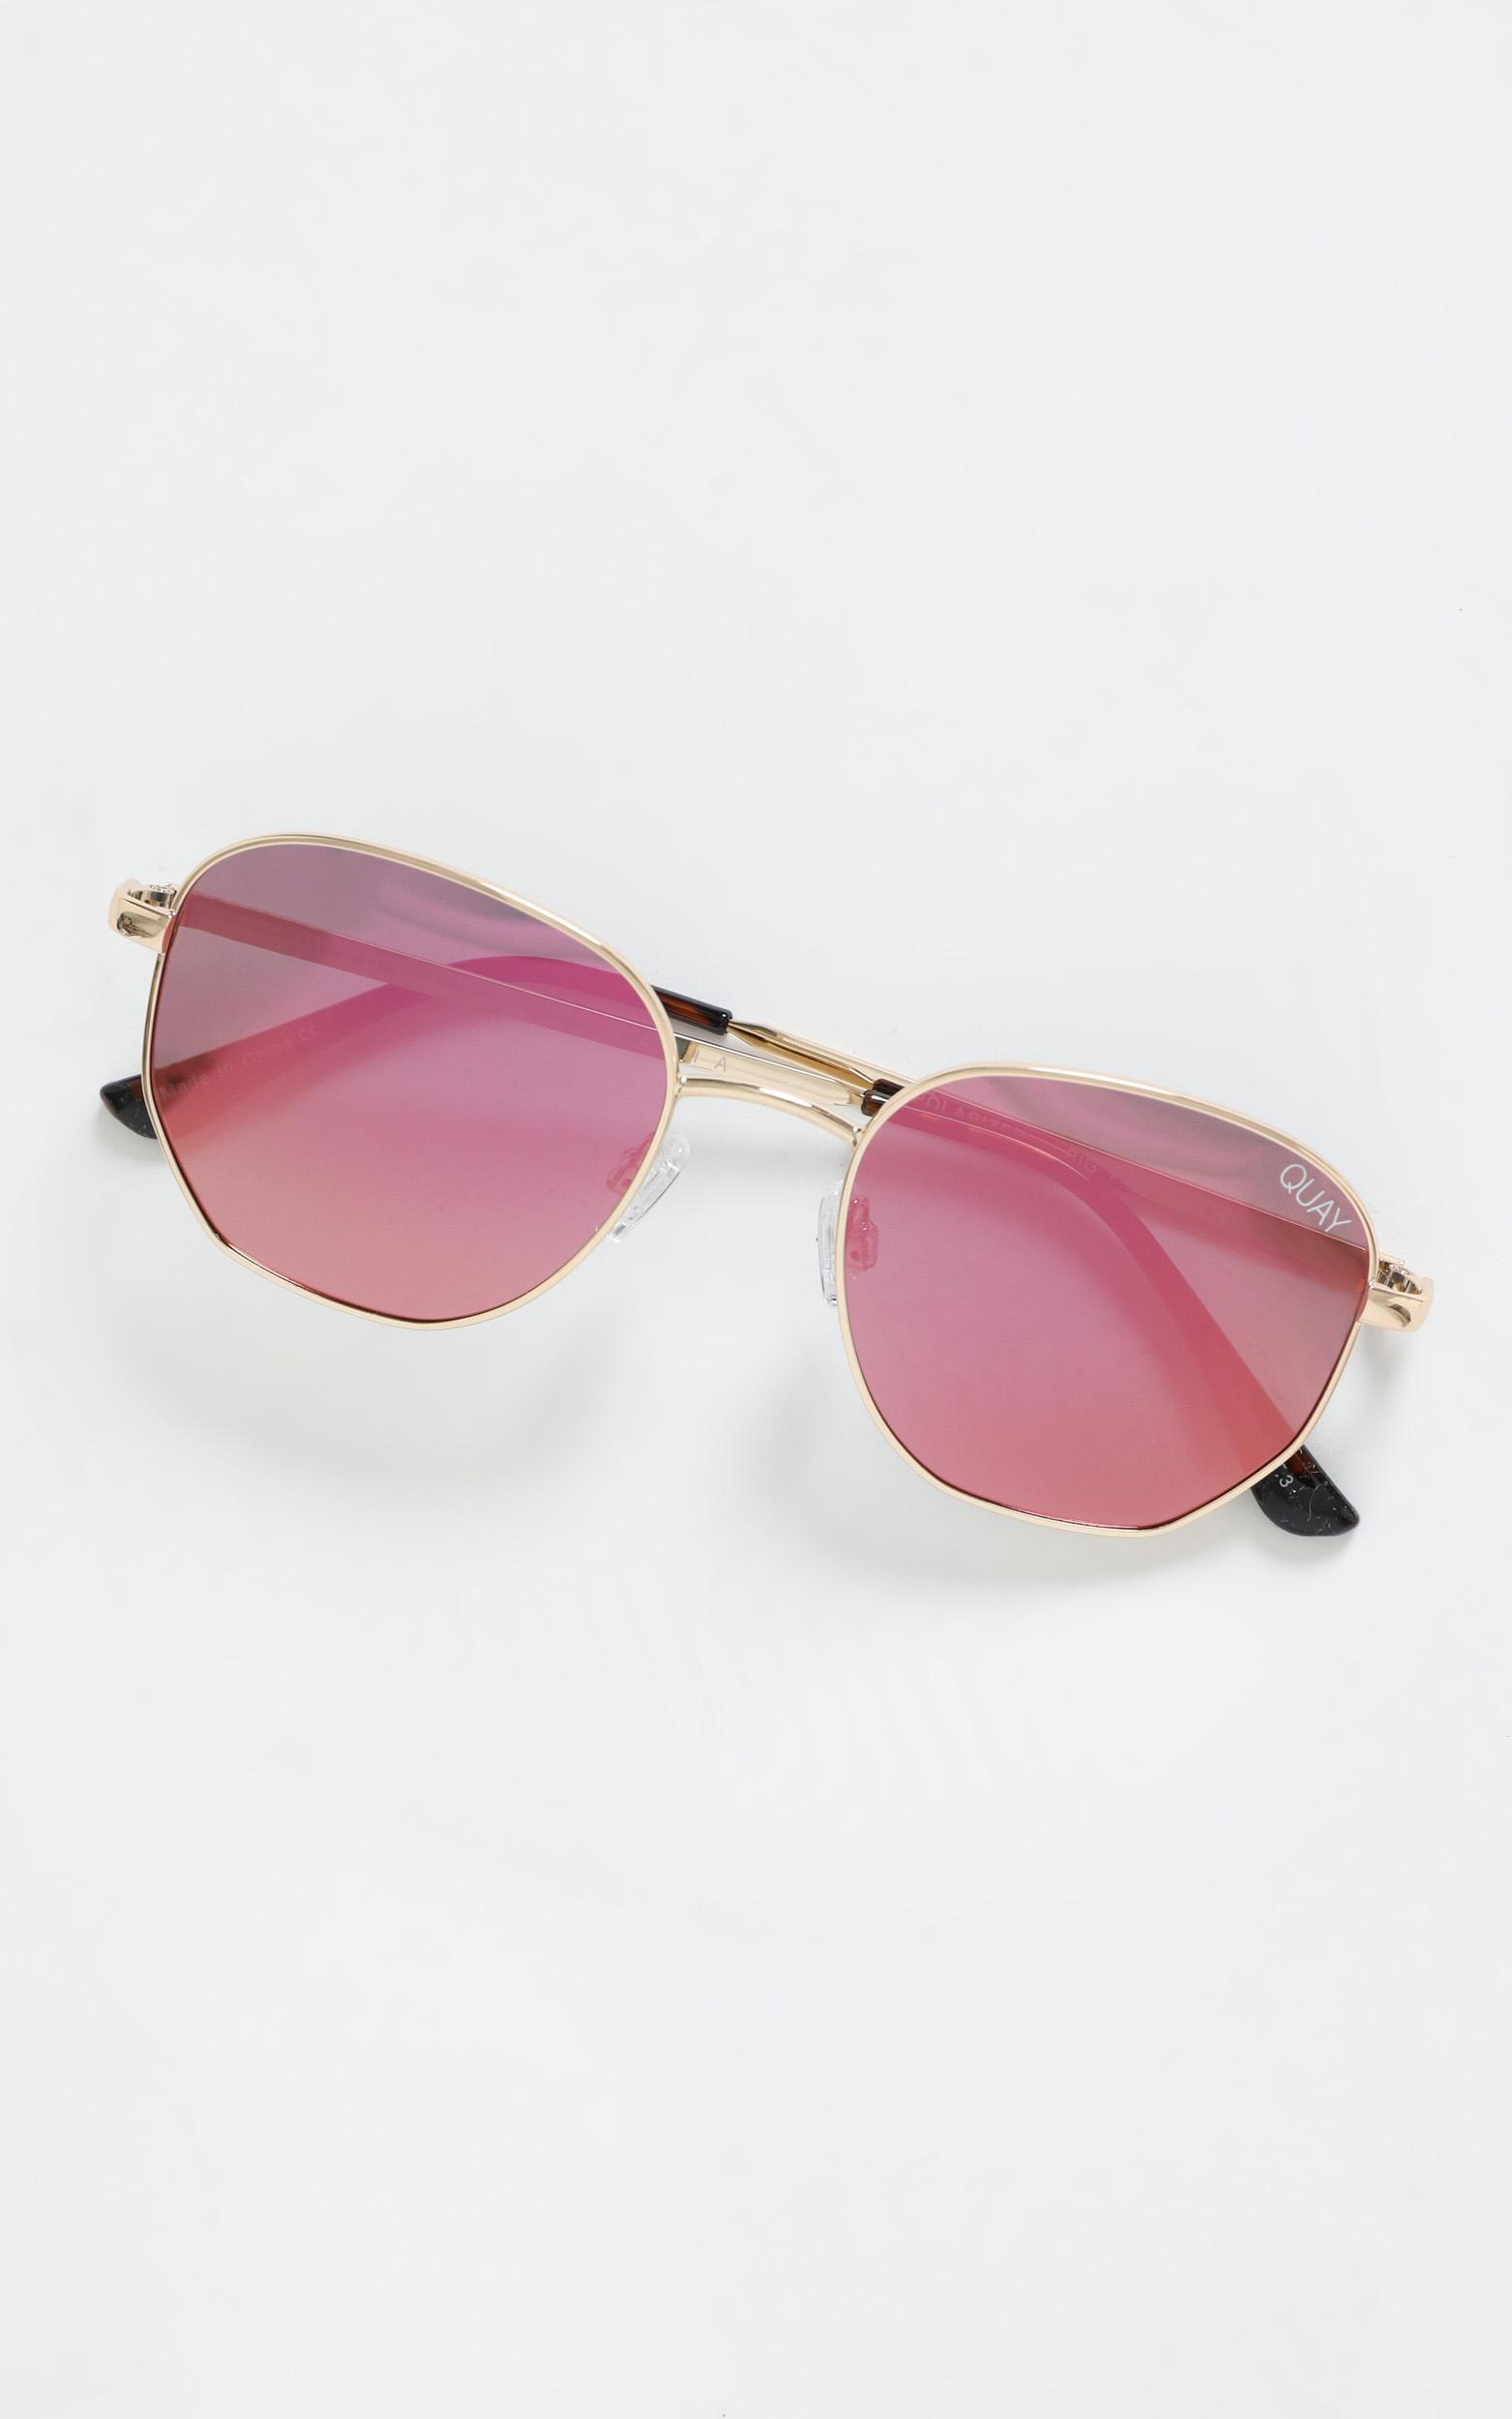 Quay - Big Time Sunglasses in Gold and Pink, , hi-res image number null